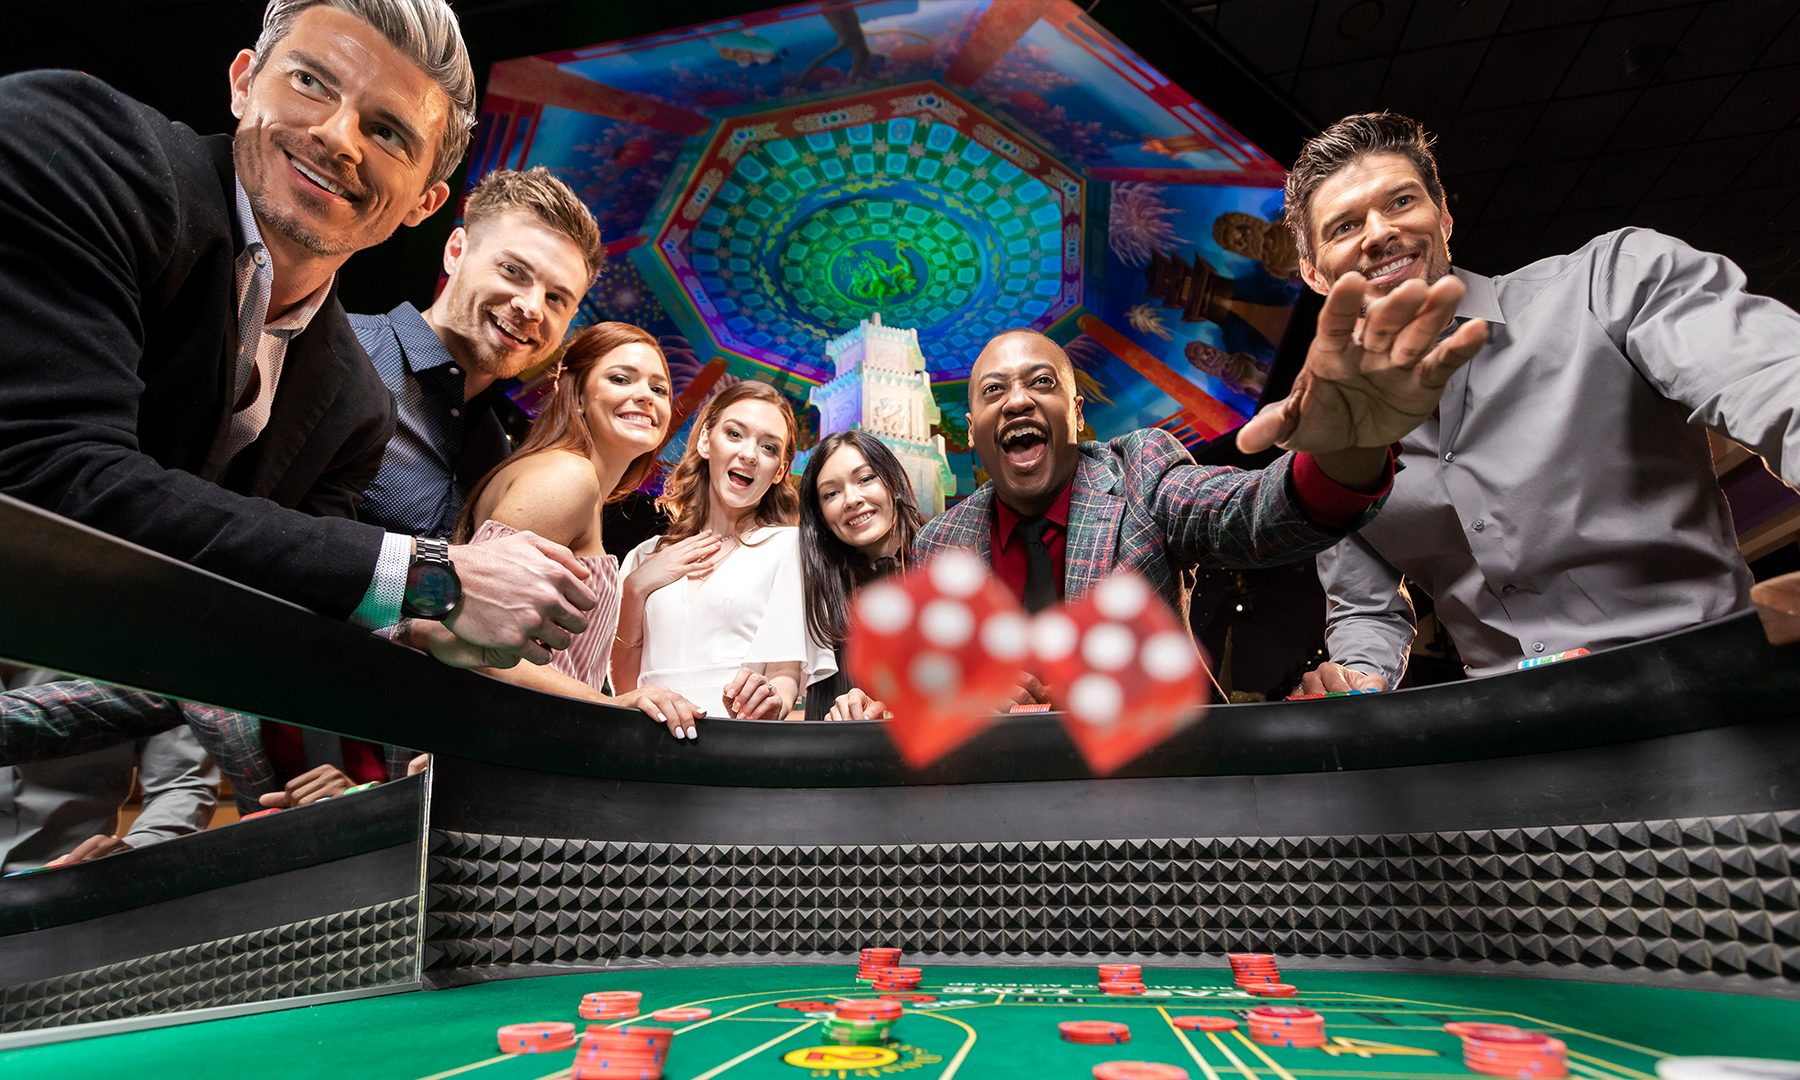 Casino gamer with the leading rating